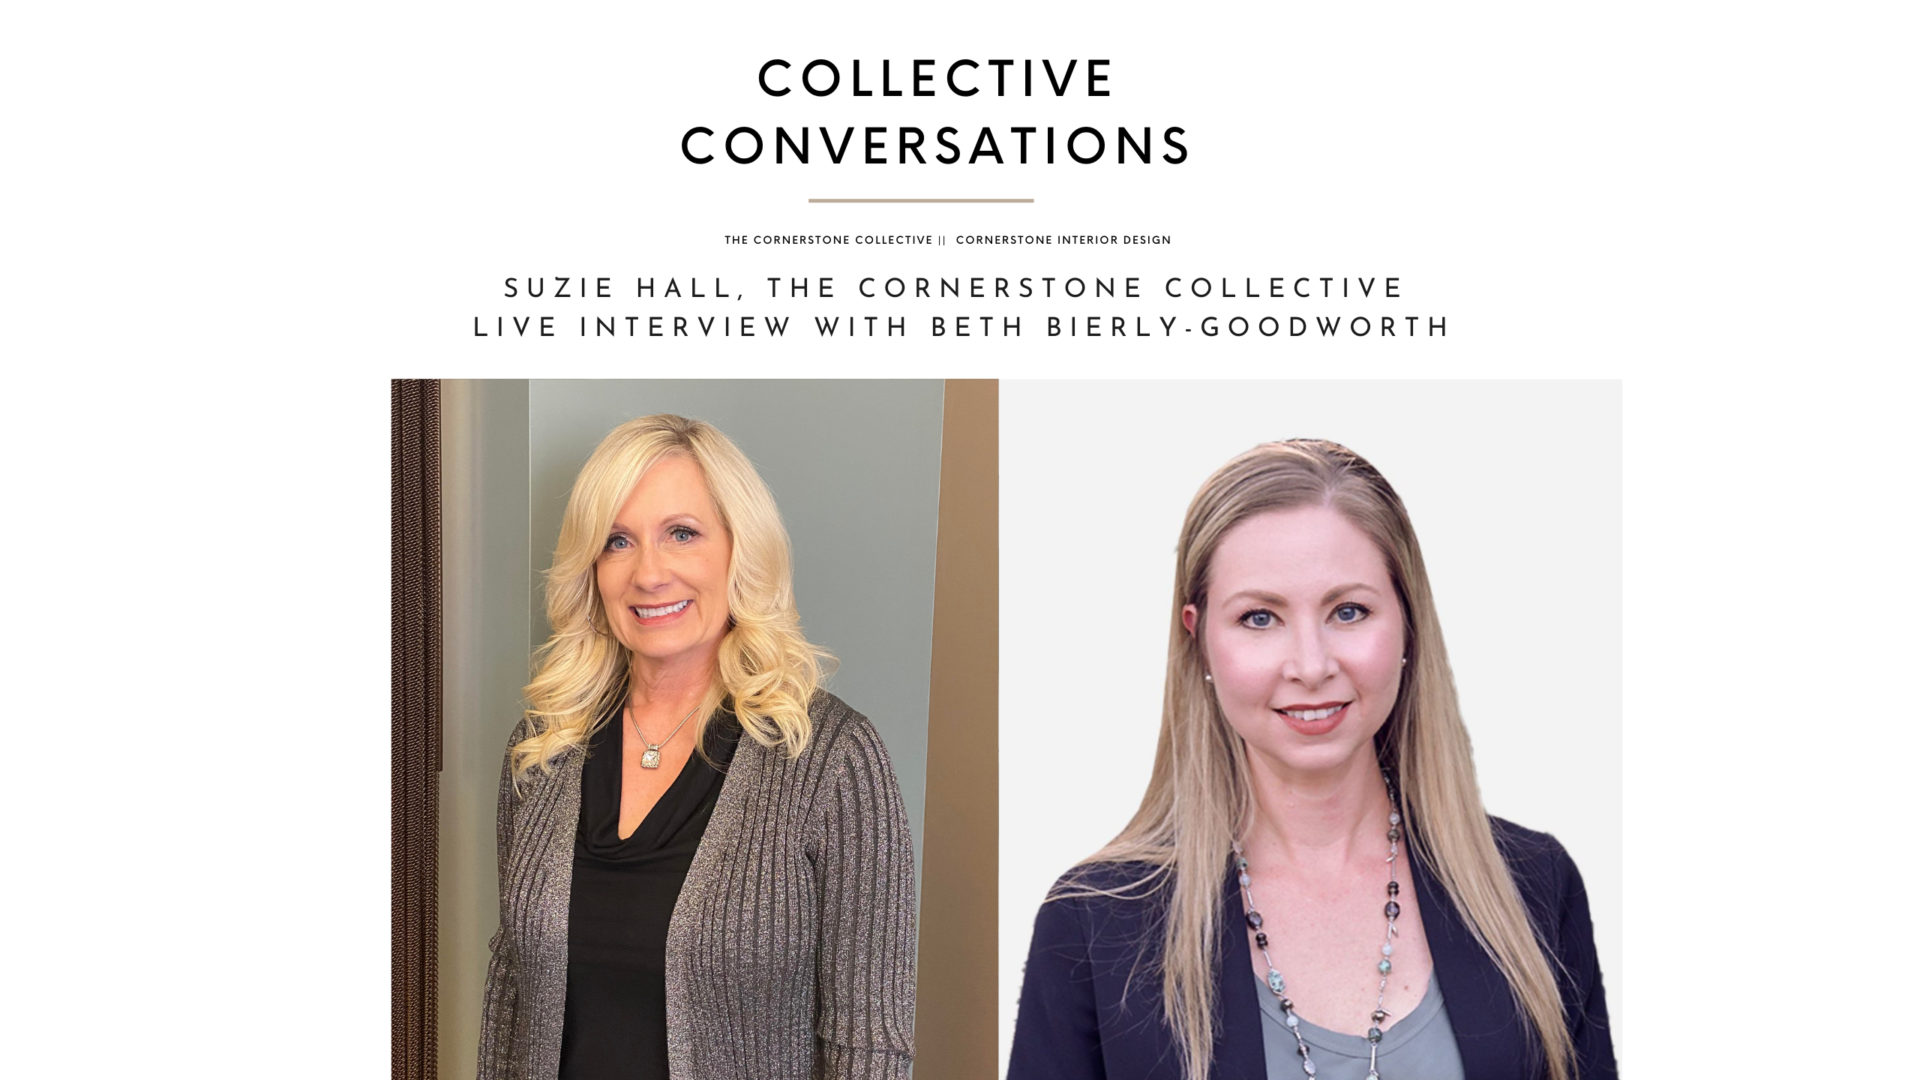 Conversations With Our Collective Associates: Beth Bierly-Goodworth